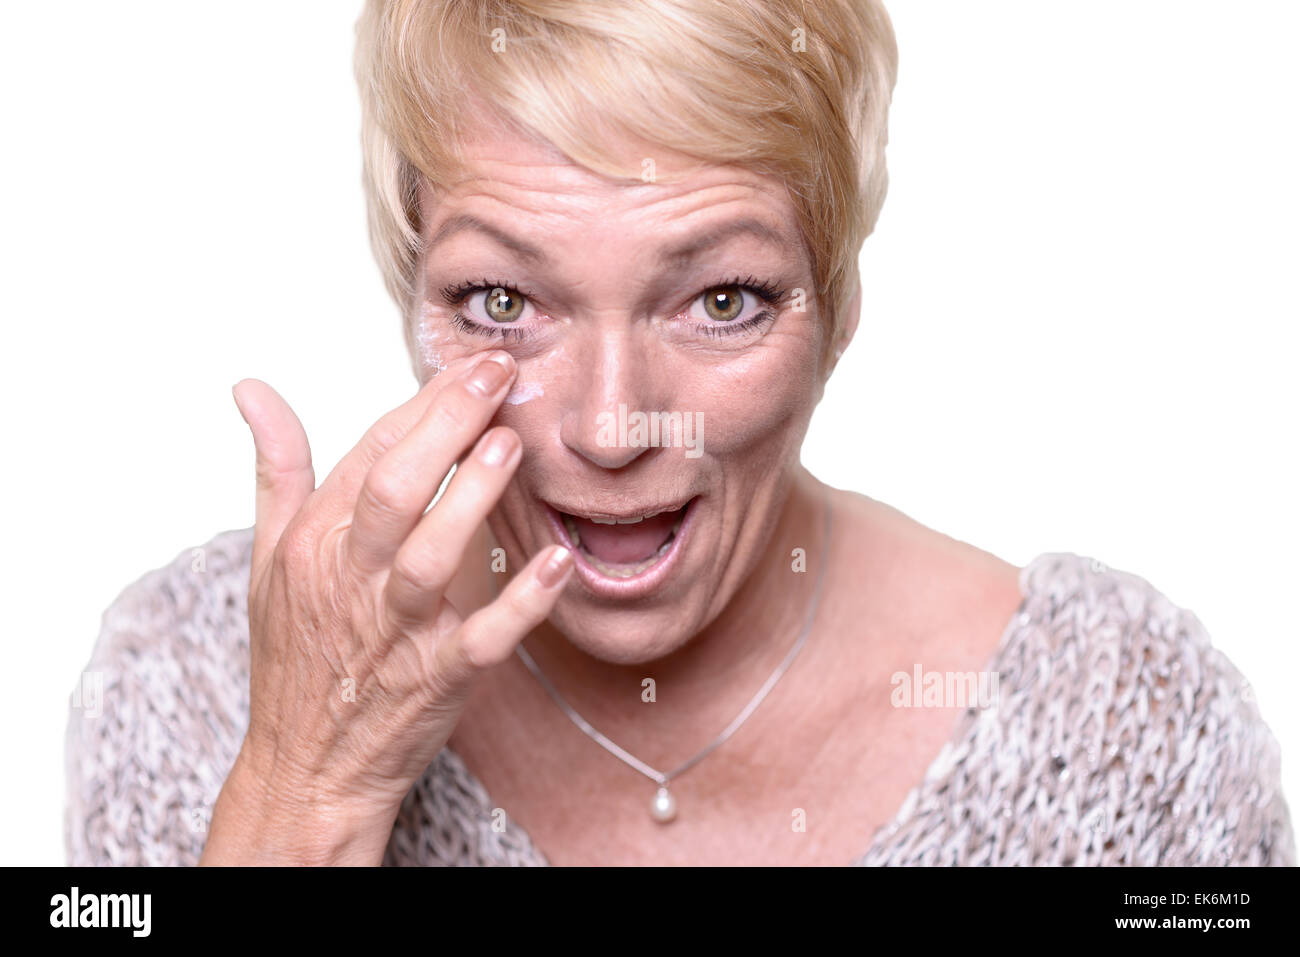 Middle-aged attractive blond woman applying anti-aging cream to the wrinkles around her eyes in an effort to combat - Stock Image